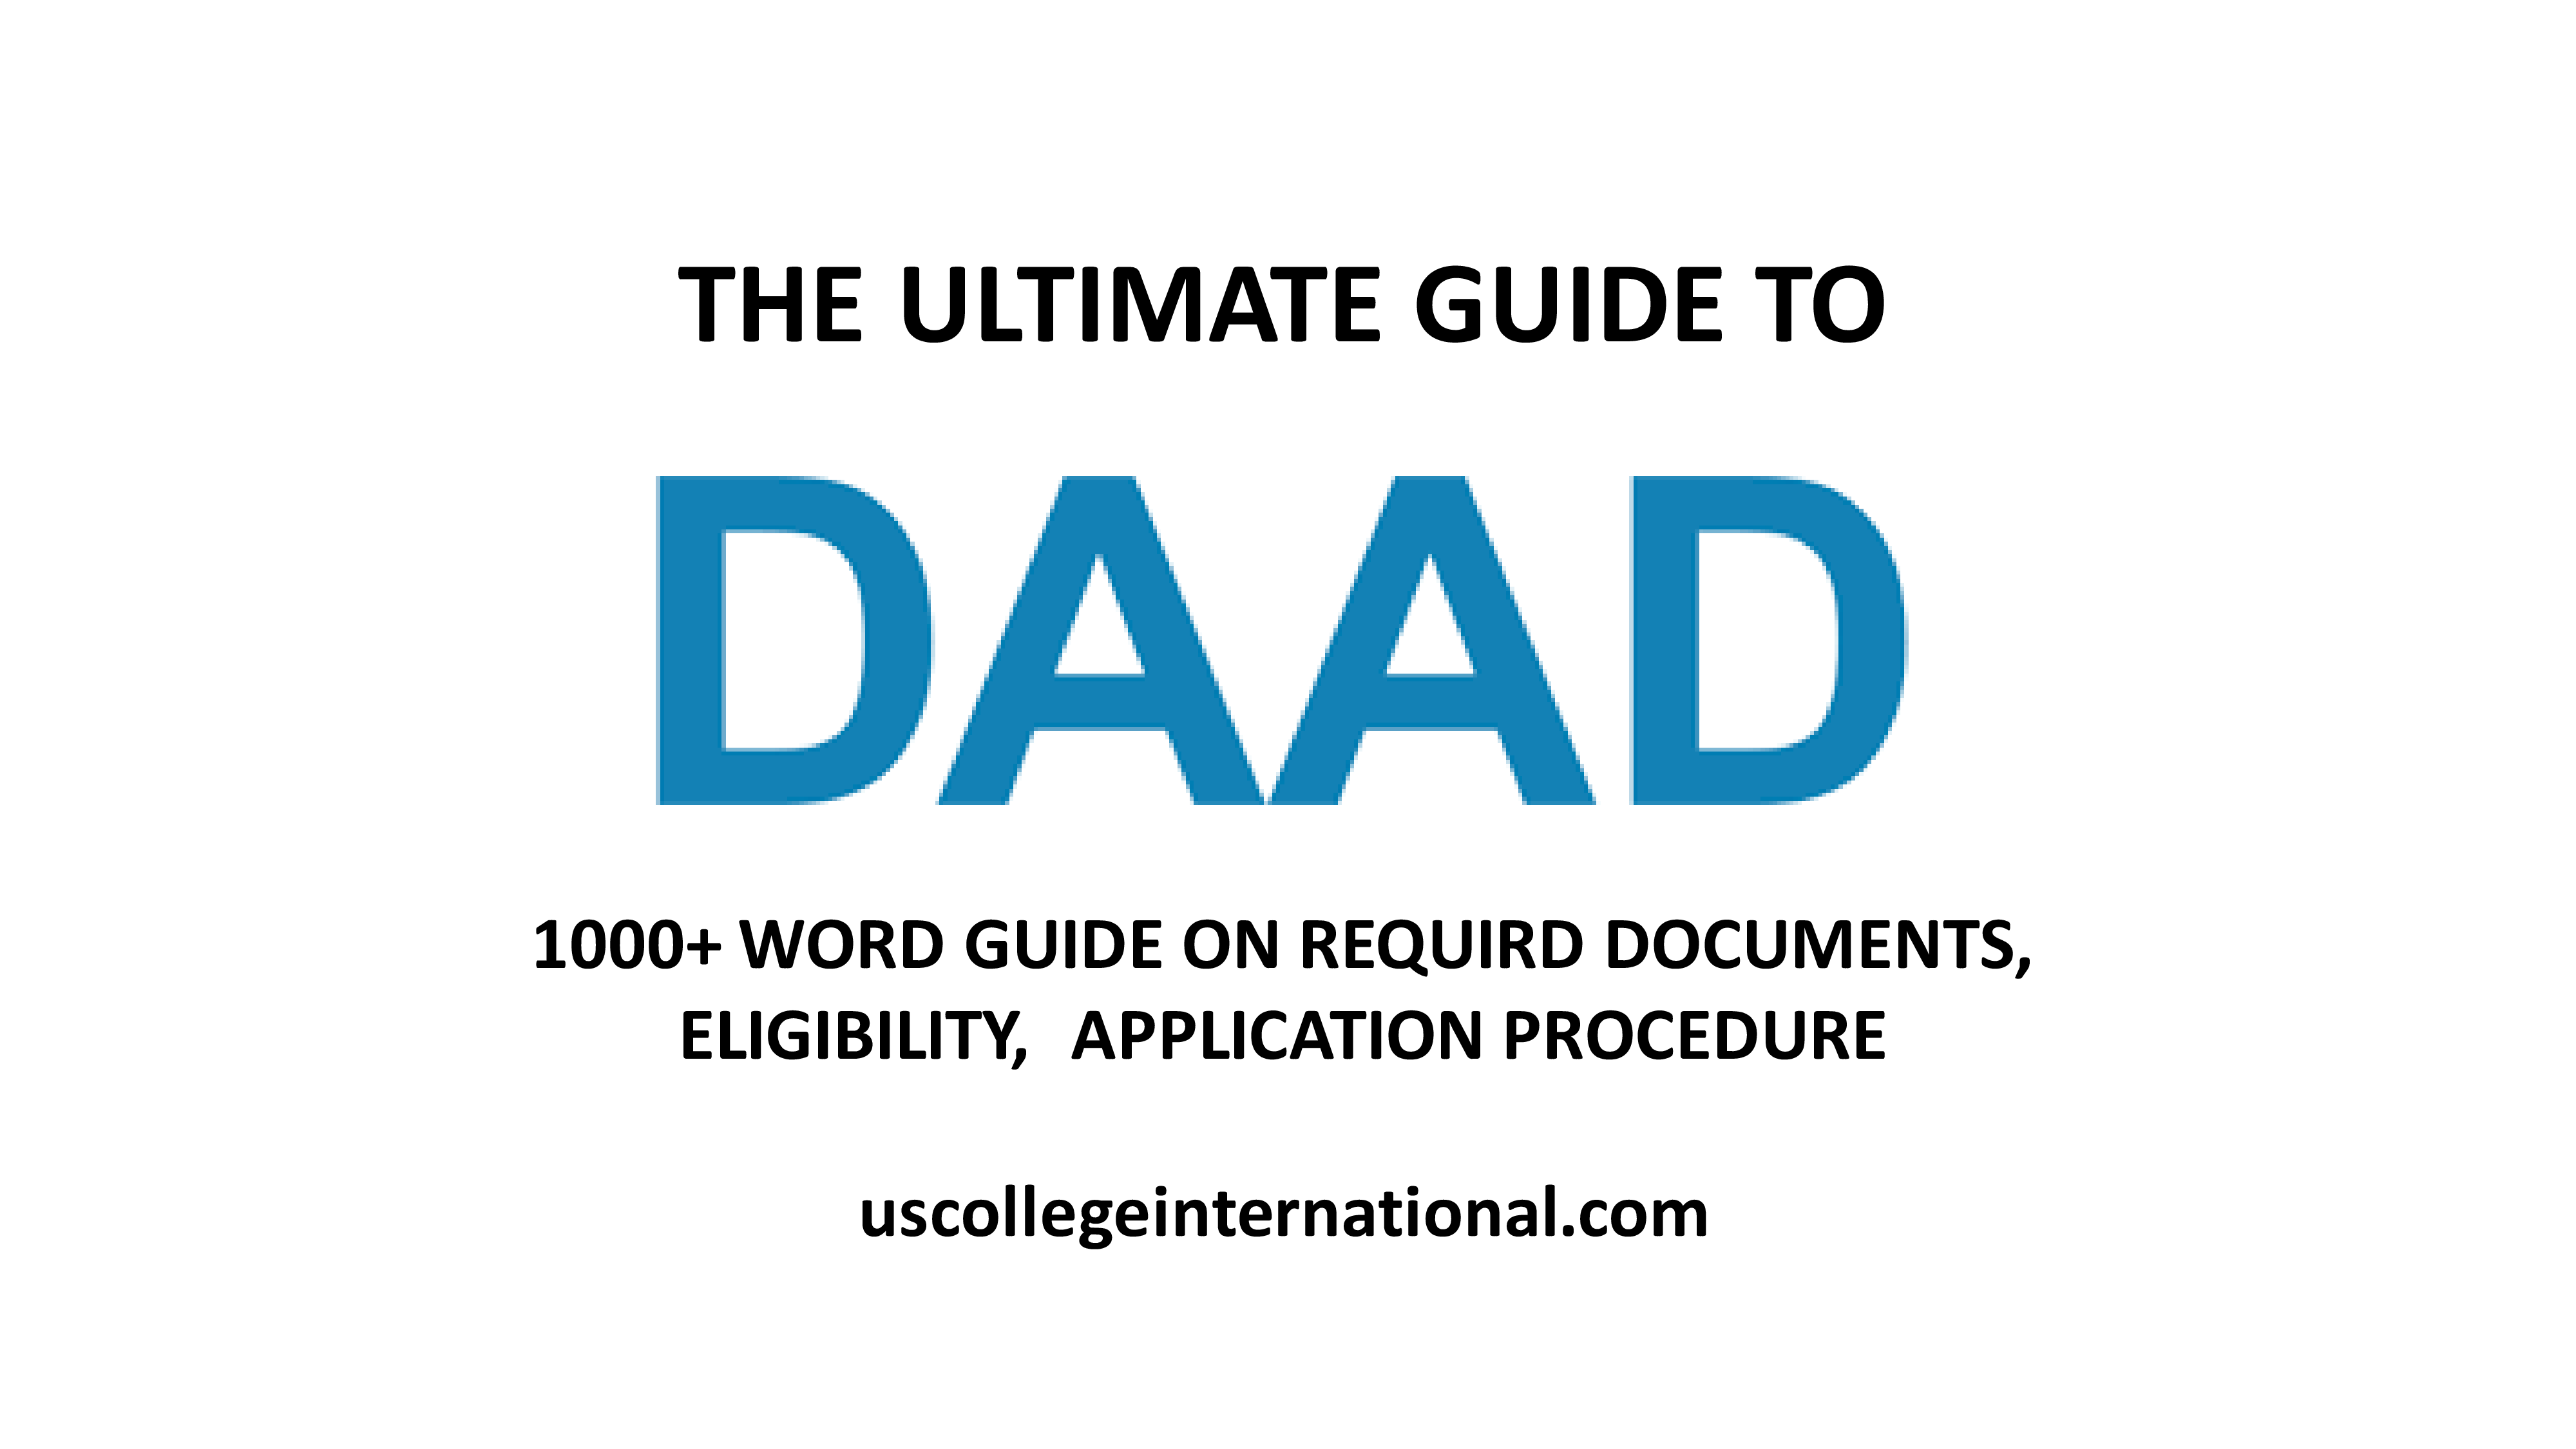 Ultimate Guide to DADD Scholarships - Scholarships for International on application template, application approved, application meaning in science, application to rent california, application to join motorcycle club, application insights, application error, application to be my boyfriend, application clip art, application for employment, application in spanish, application for rental, application for scholarship sample, application database diagram, application service provider, application cartoon, application to join a club, application to date my son, application submitted, application trial,